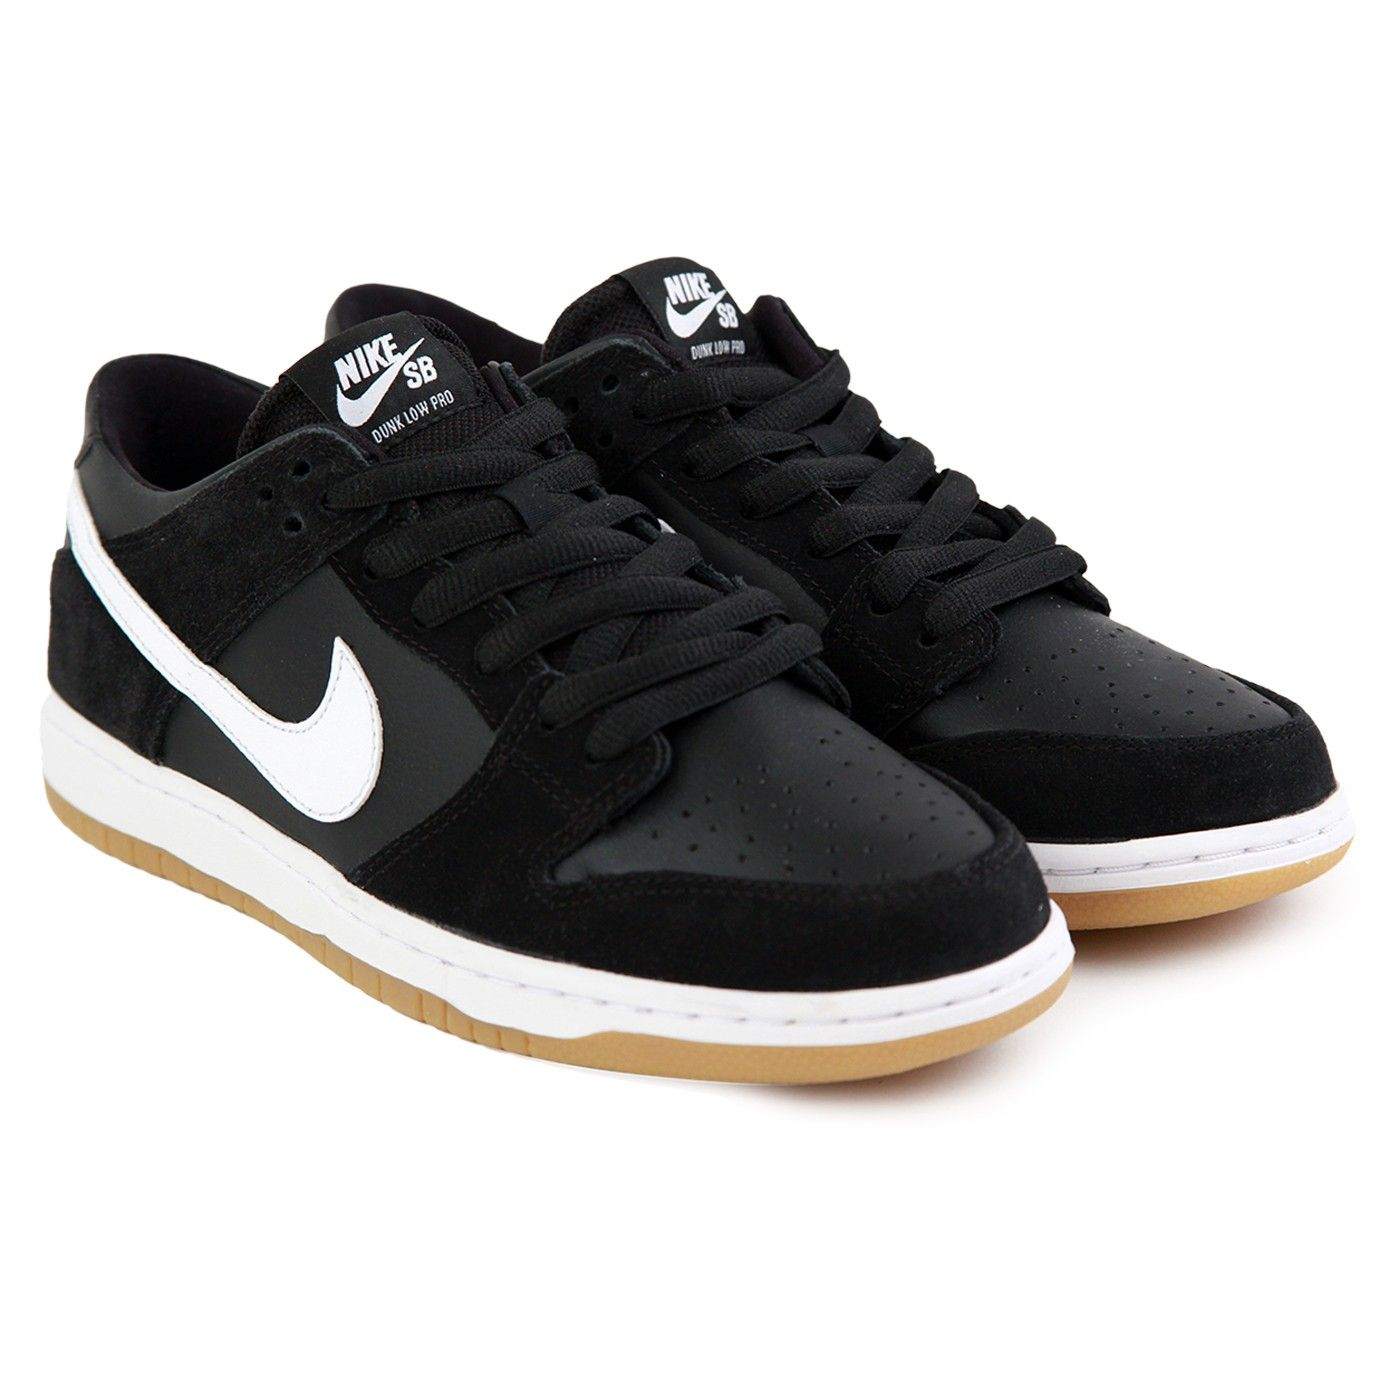 Zoom Dunk Low Pro Shoes in Black / White-Gum Light Brown by Nike SB